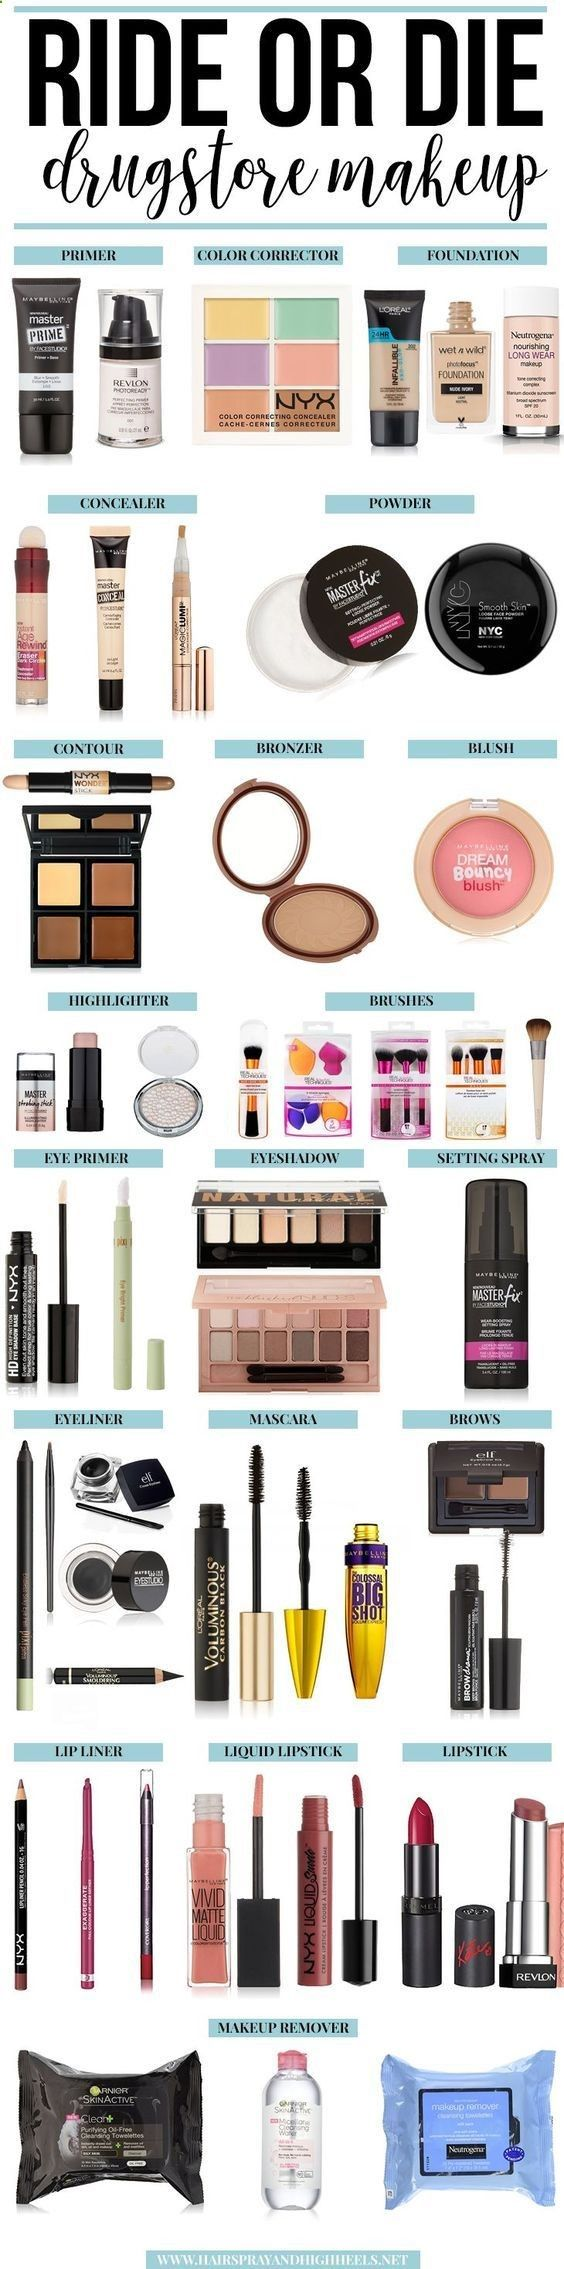 best helpful things images on Pinterest  Beauty makeup Makeup